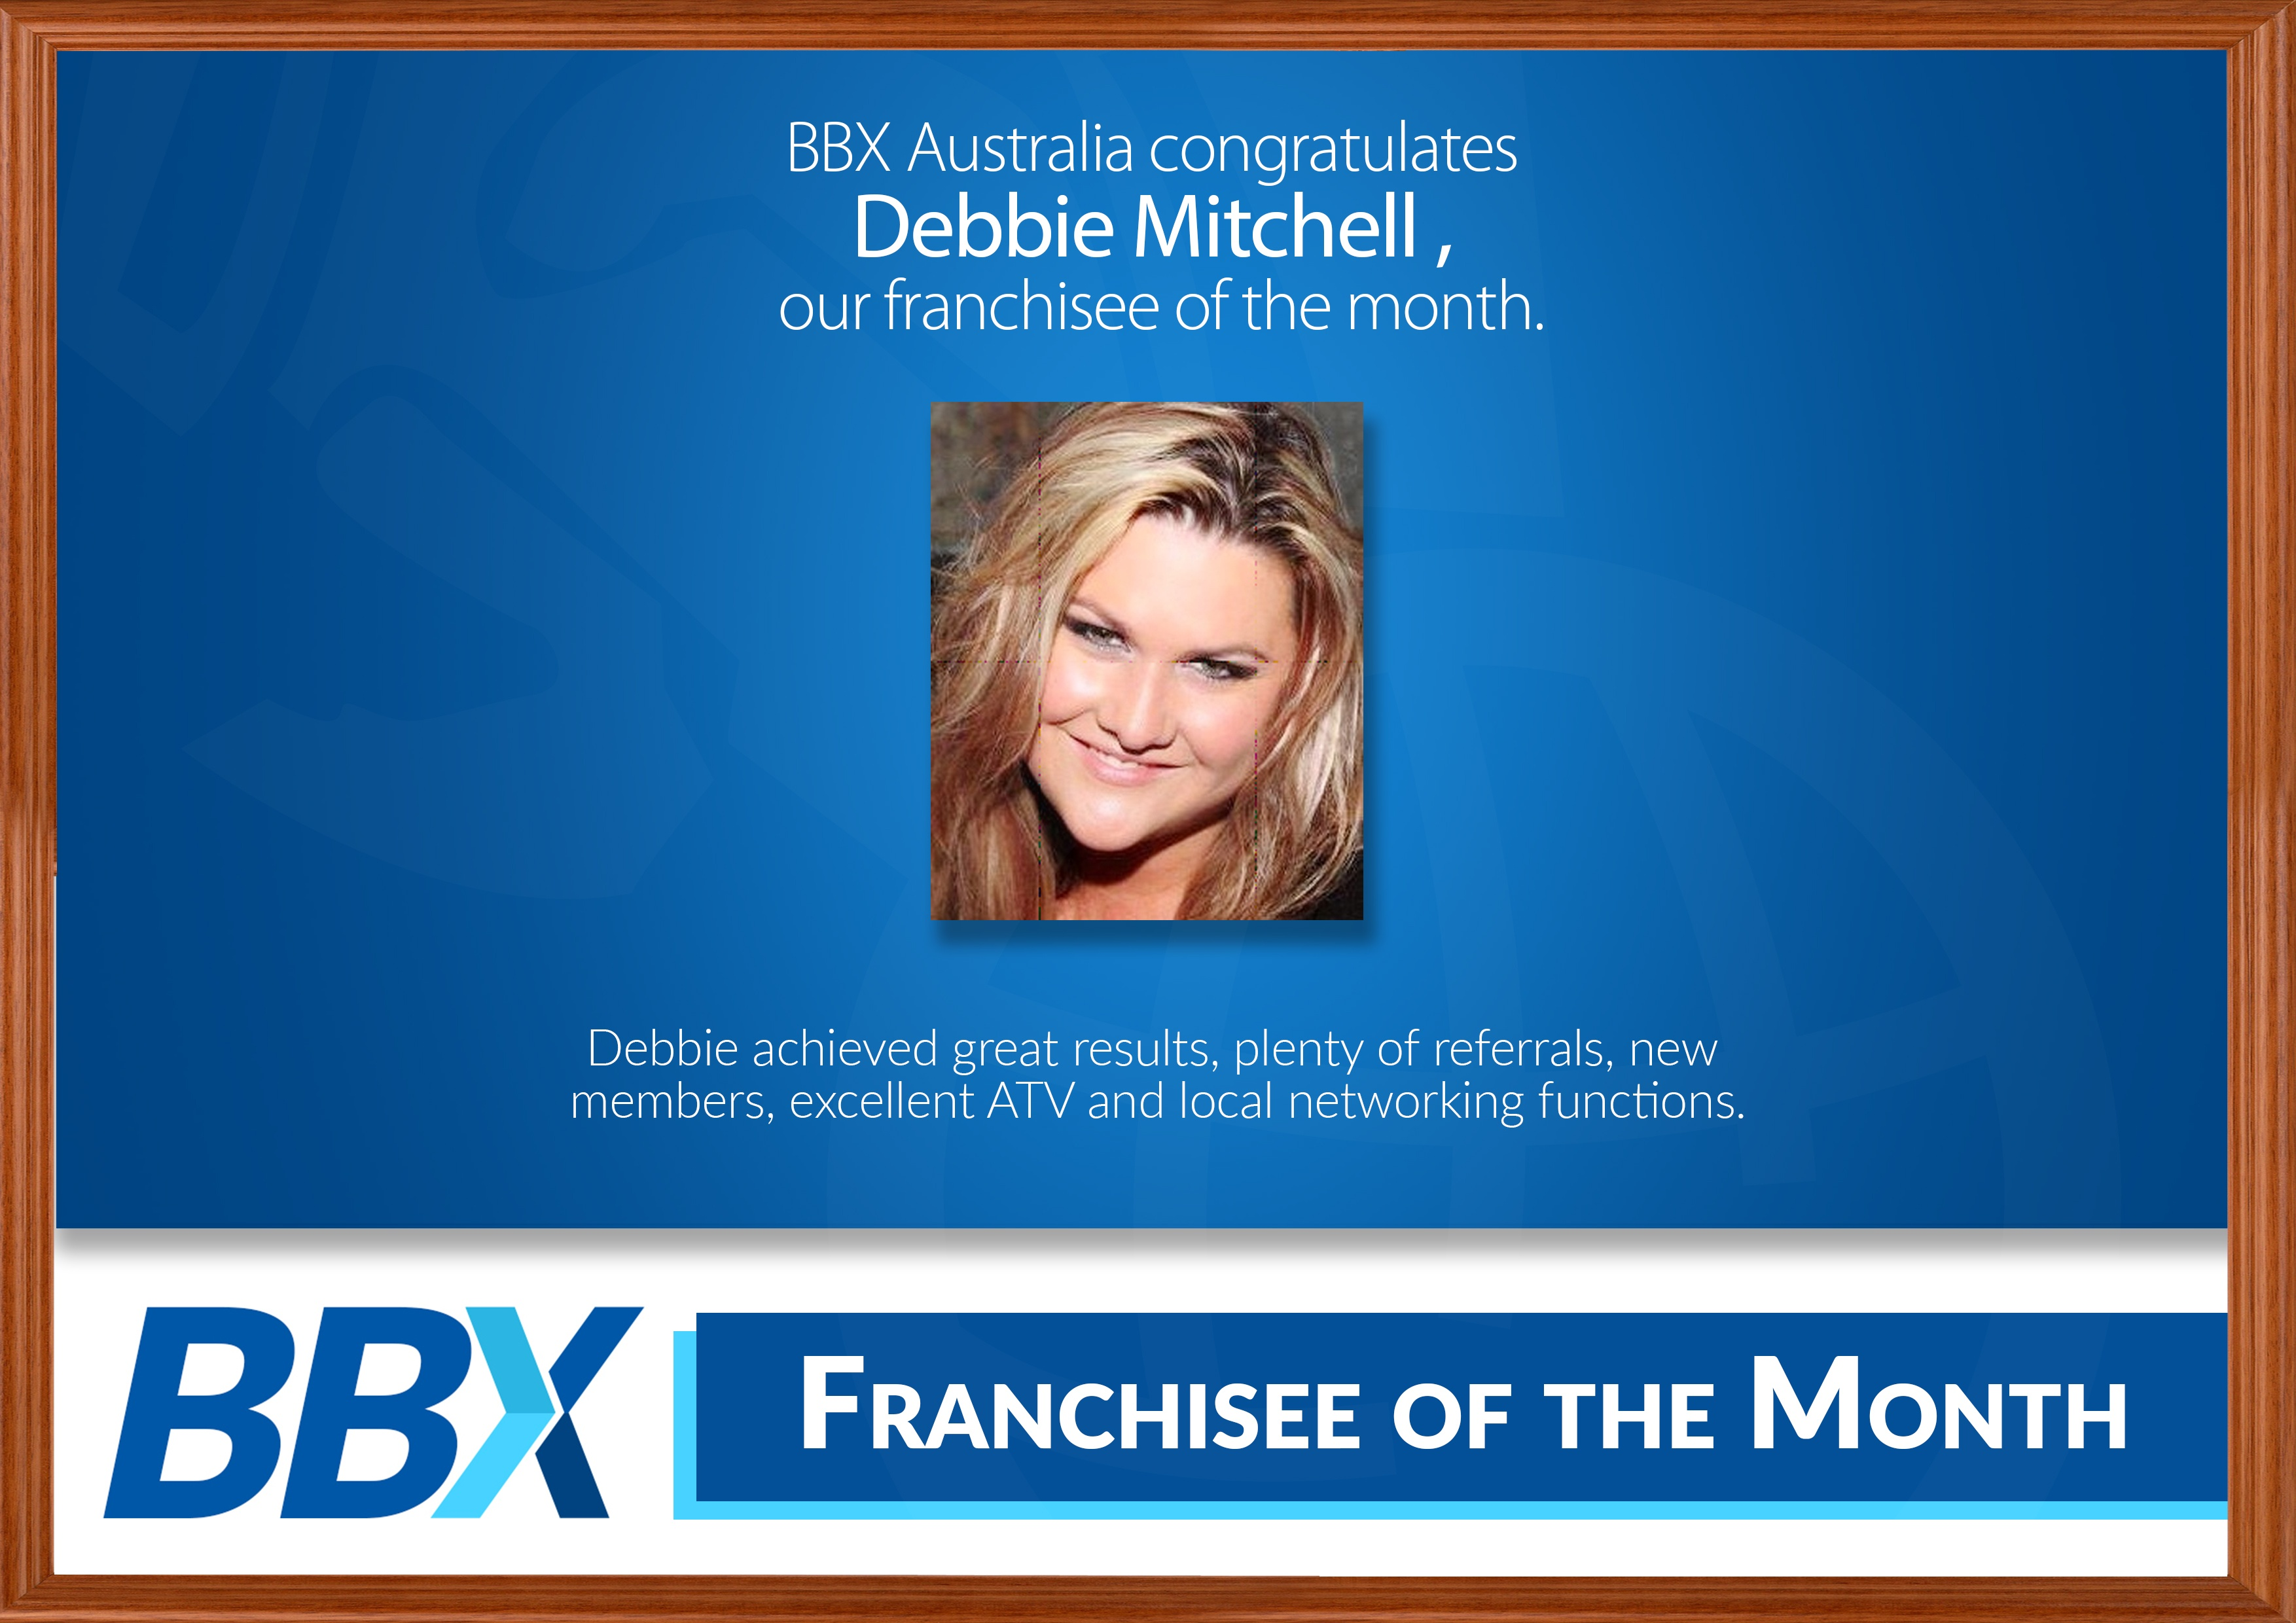 FRANCHISE OF THE MONTH debbie.jpg